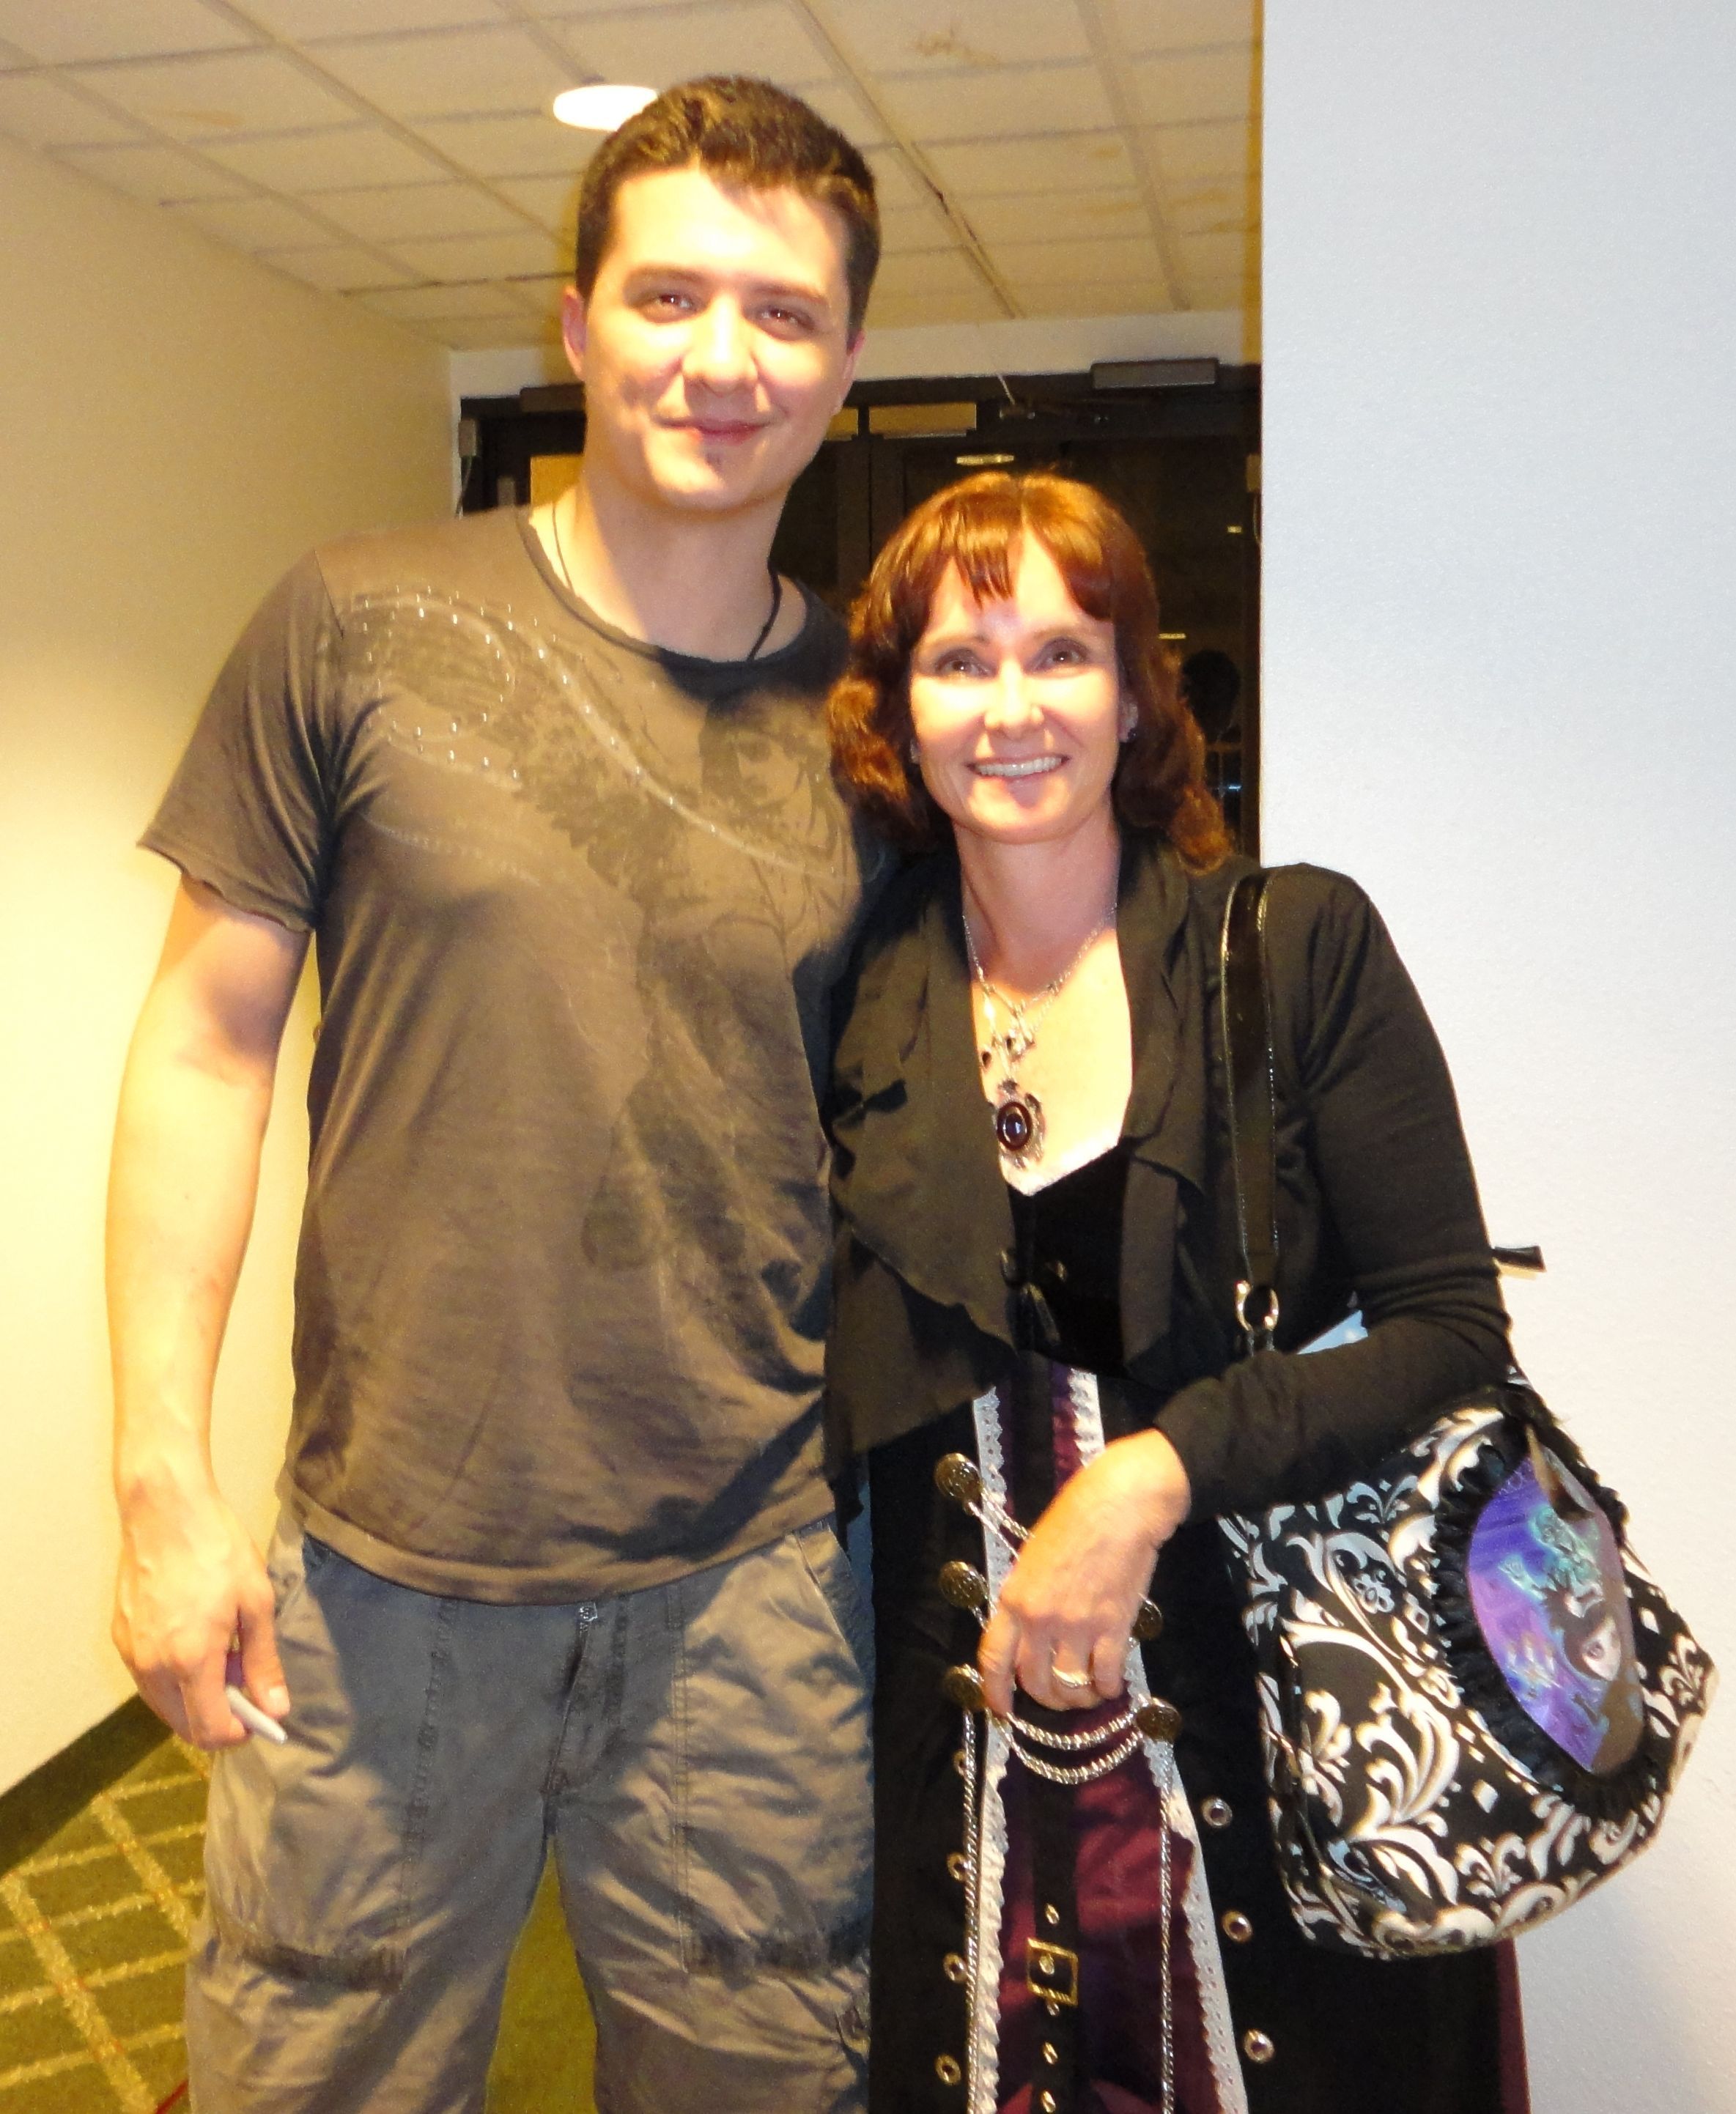 Me and Ryan Buell (Paranormal State) at the opening of American